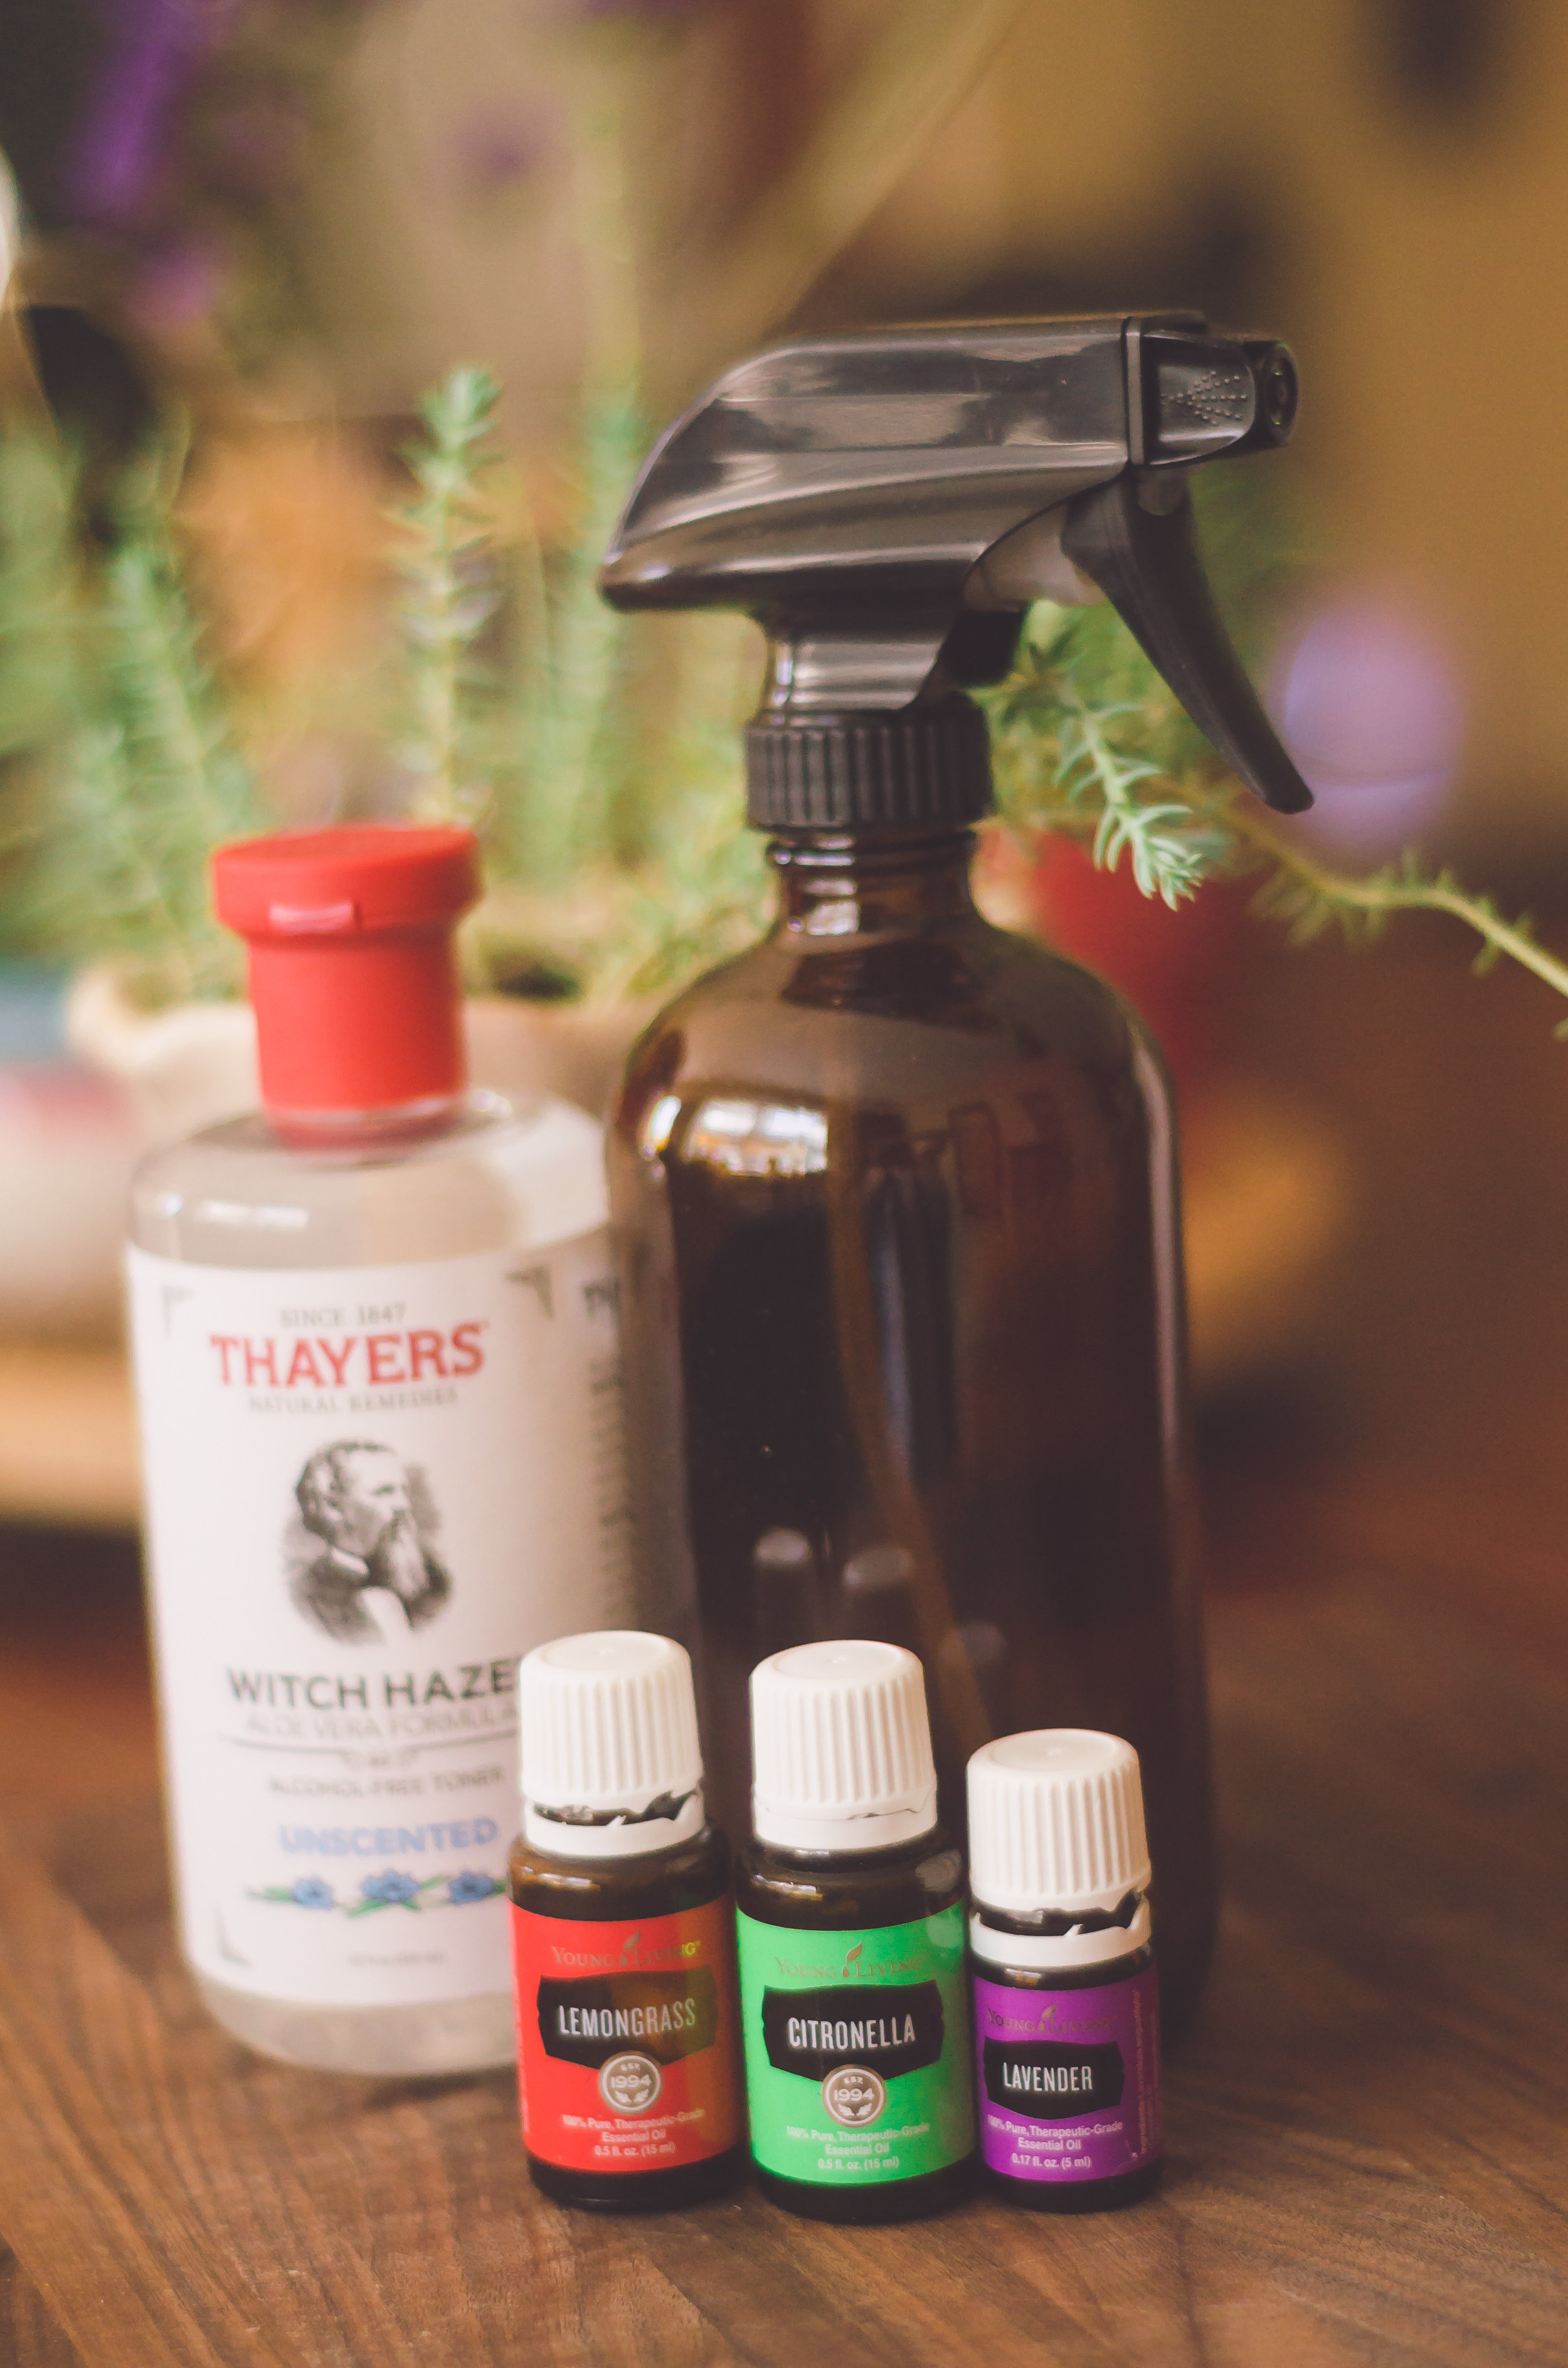 DIY Bug Spray - Non Toxic & Safe for Kids - She Got Guts